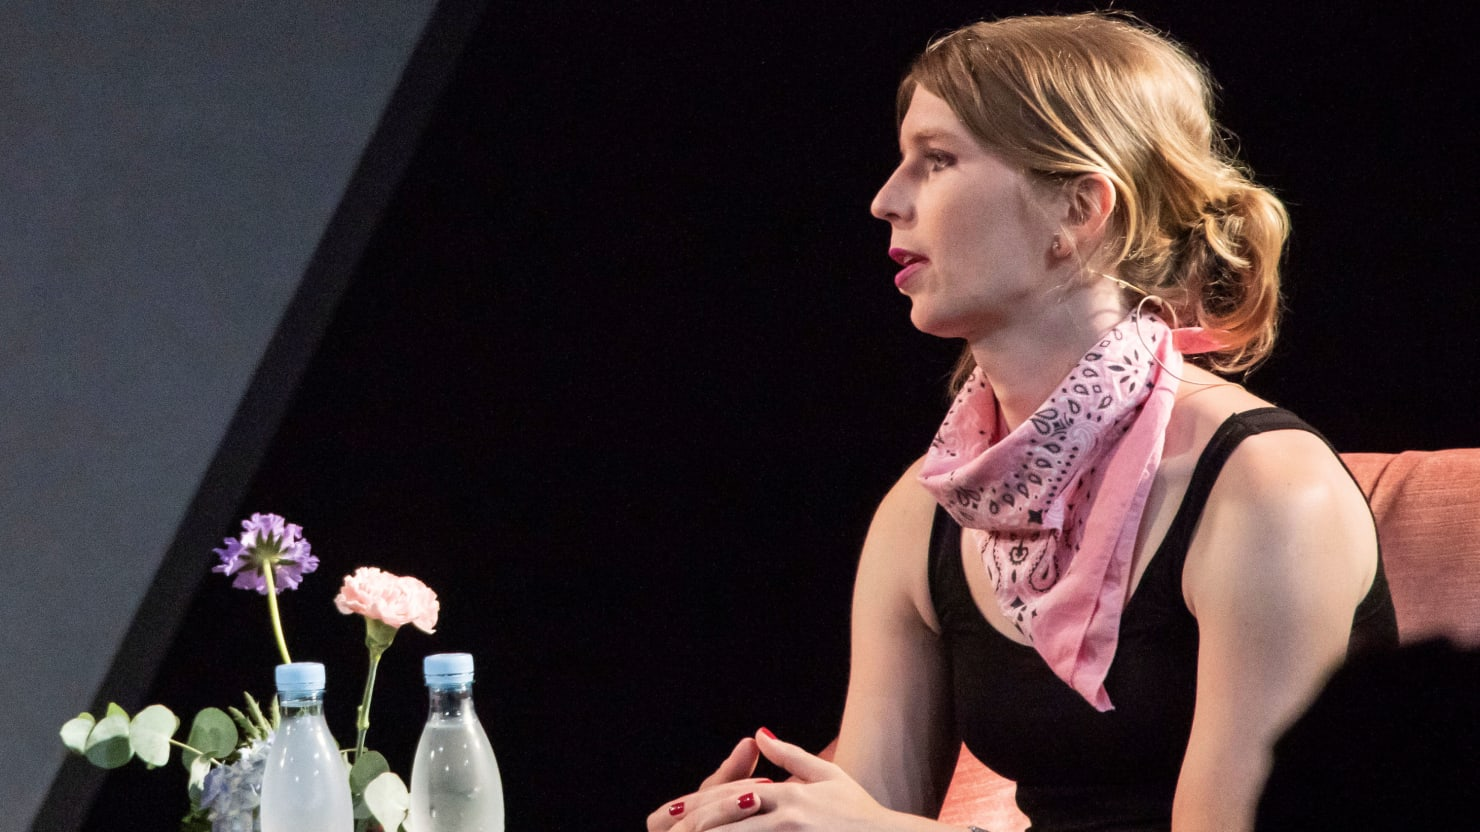 Federal Court Rejects Chelsea Manning's Appeal, Denies Her Bail Request